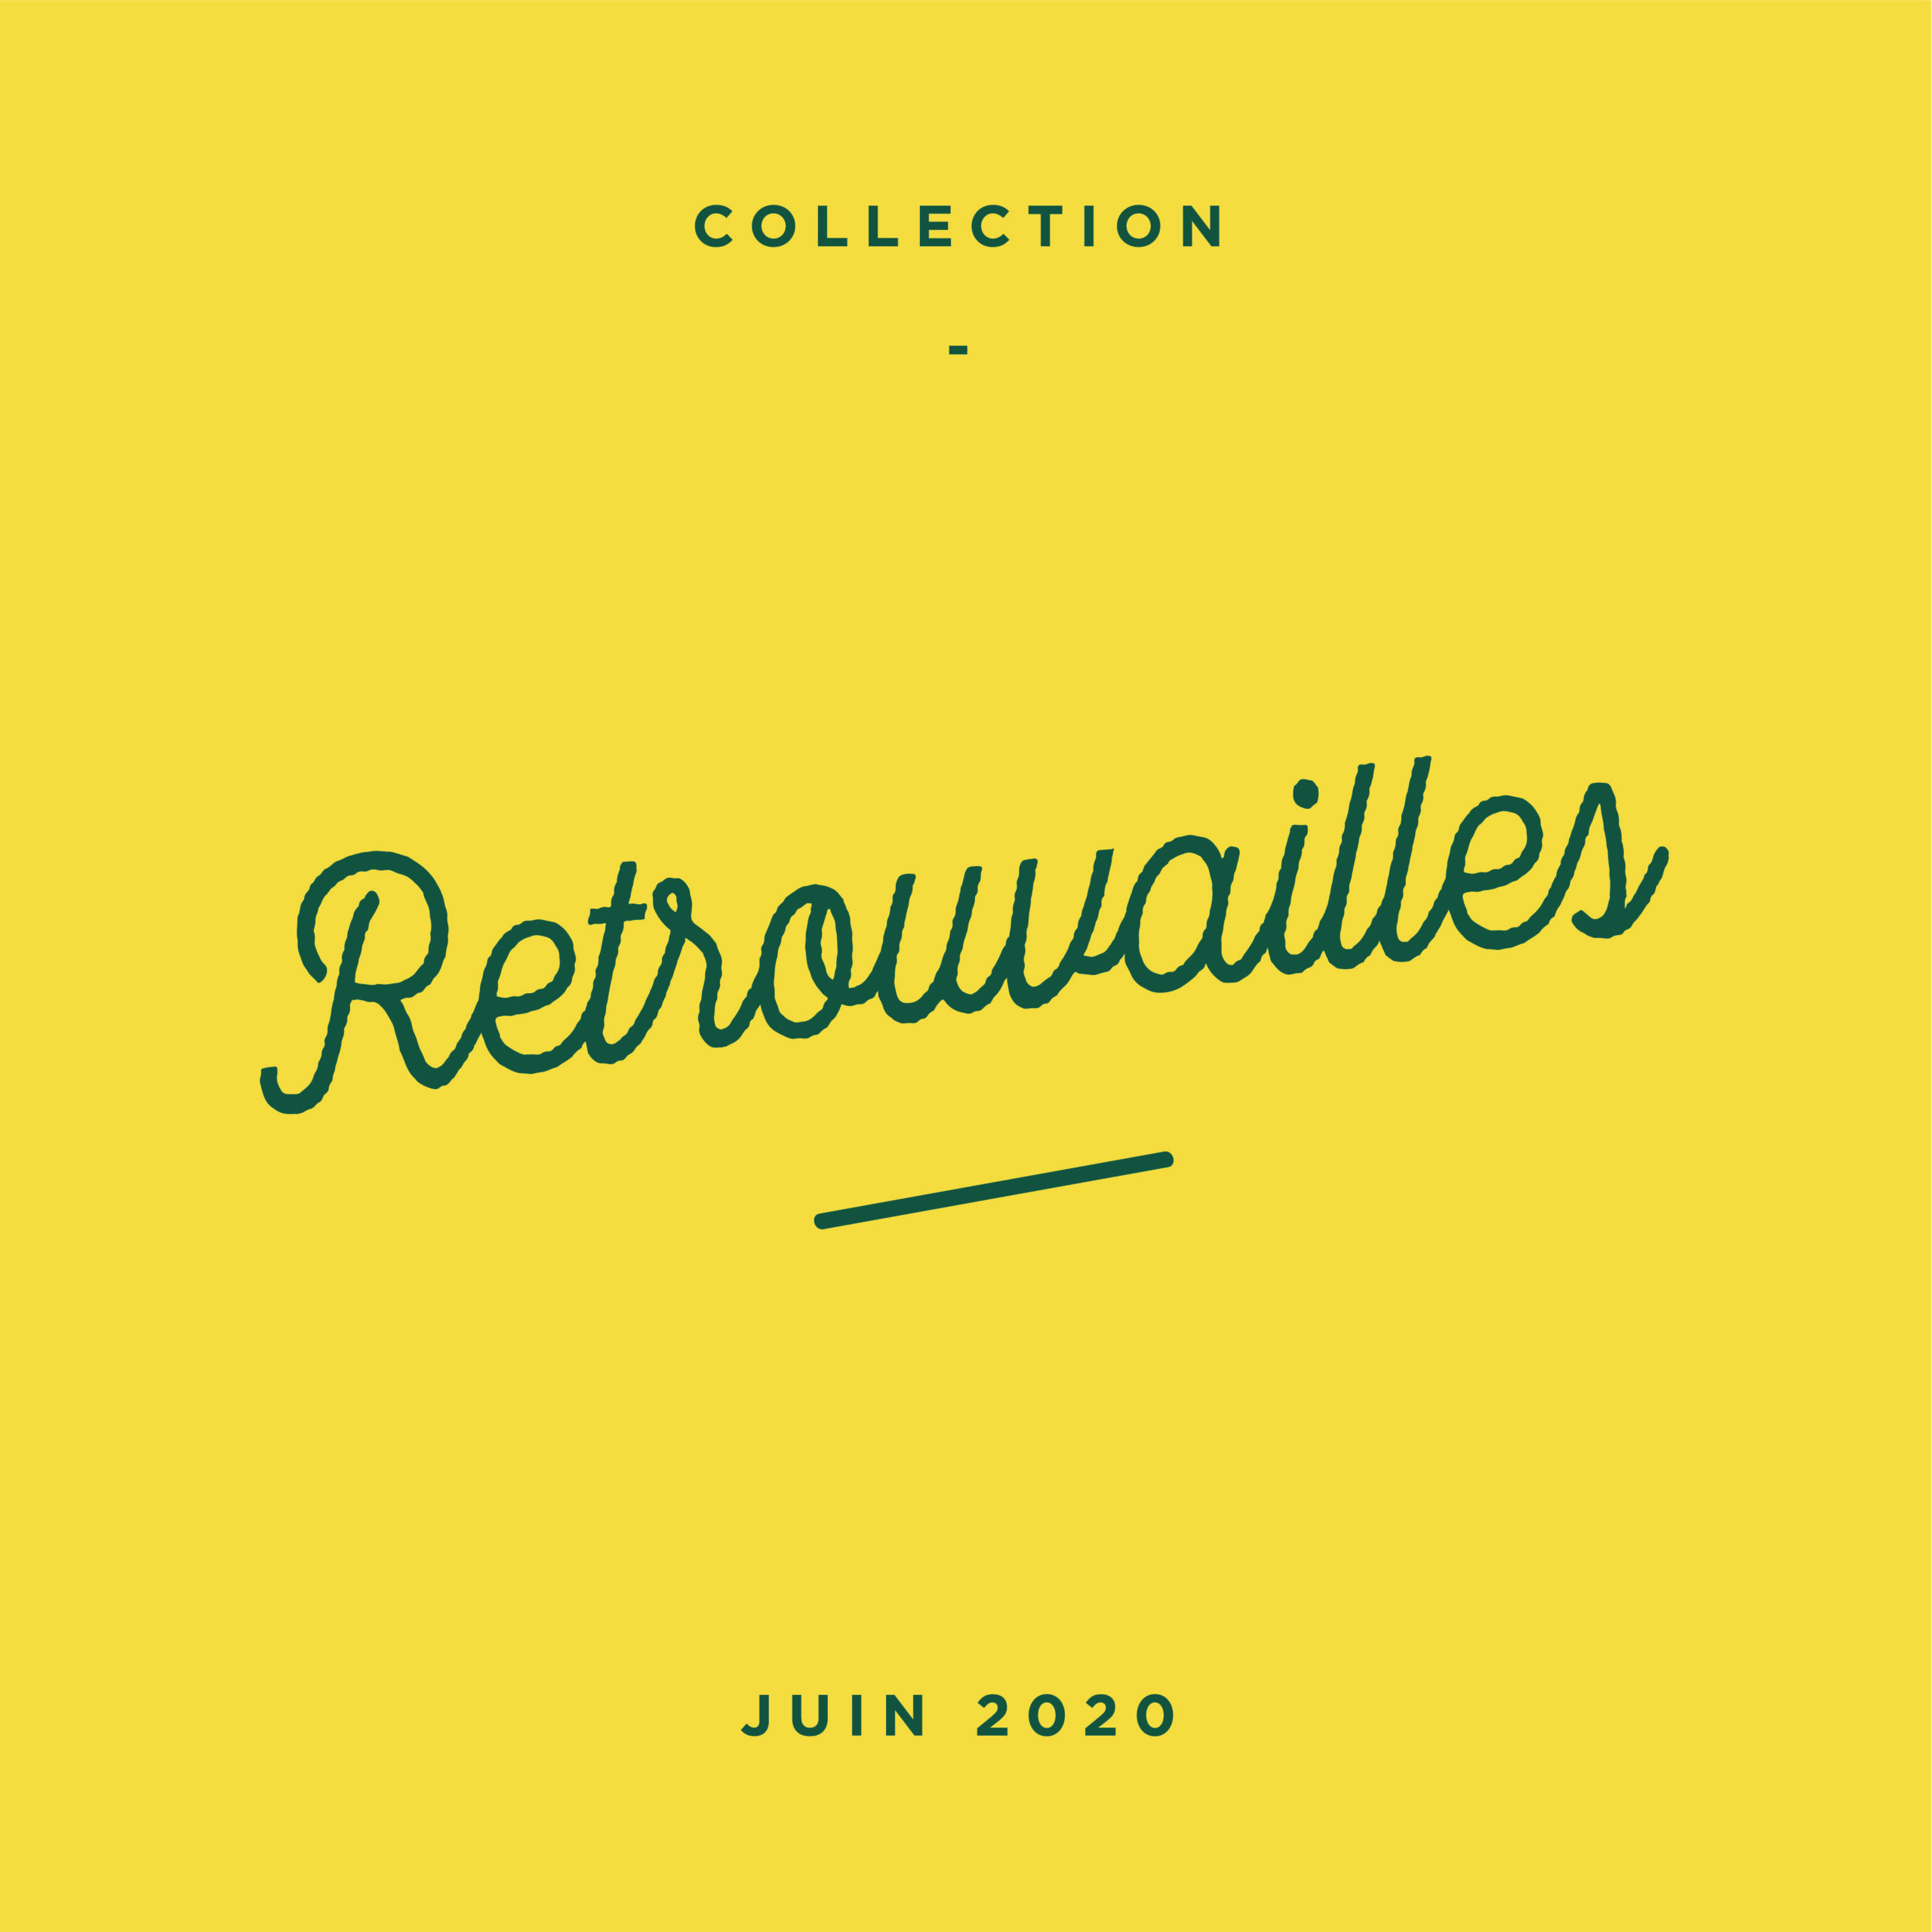 Collection Retrouvailles